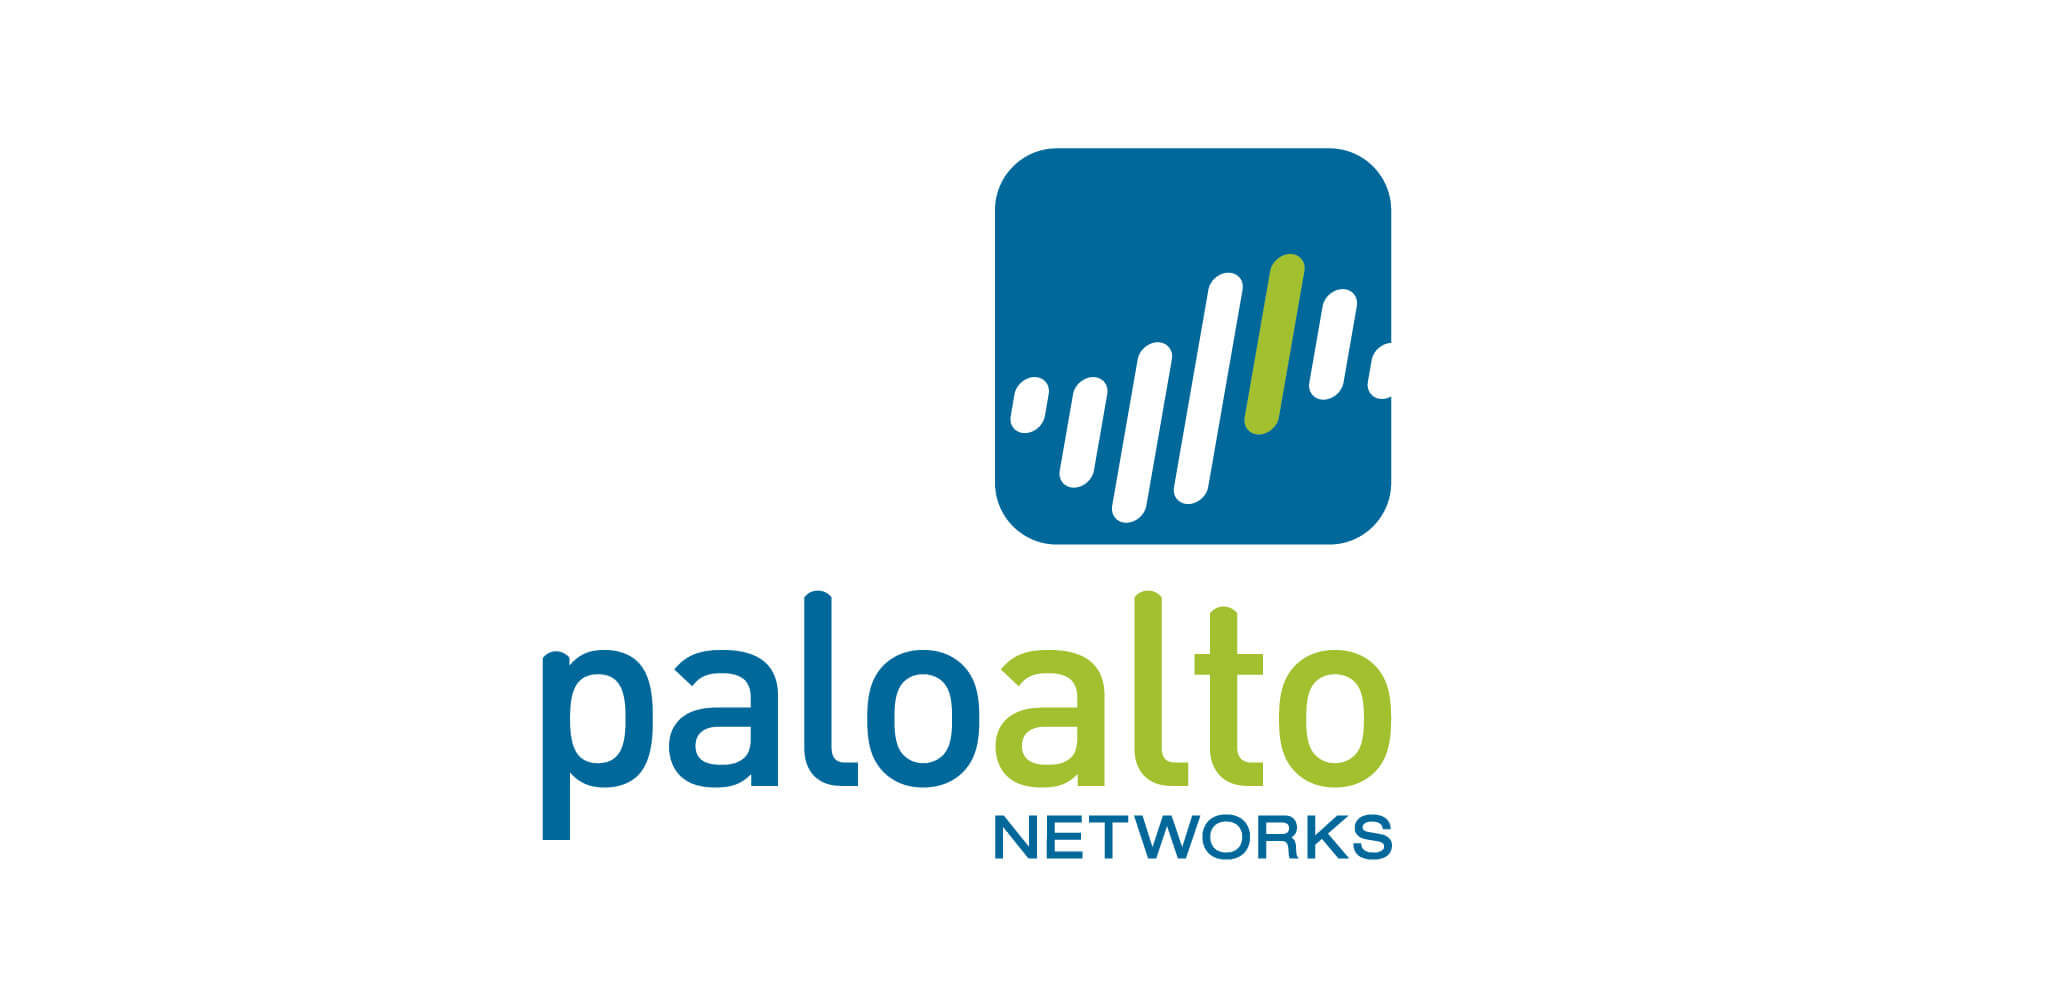 Palo Alto Networks Start up Branding Designed By 405 GROUP